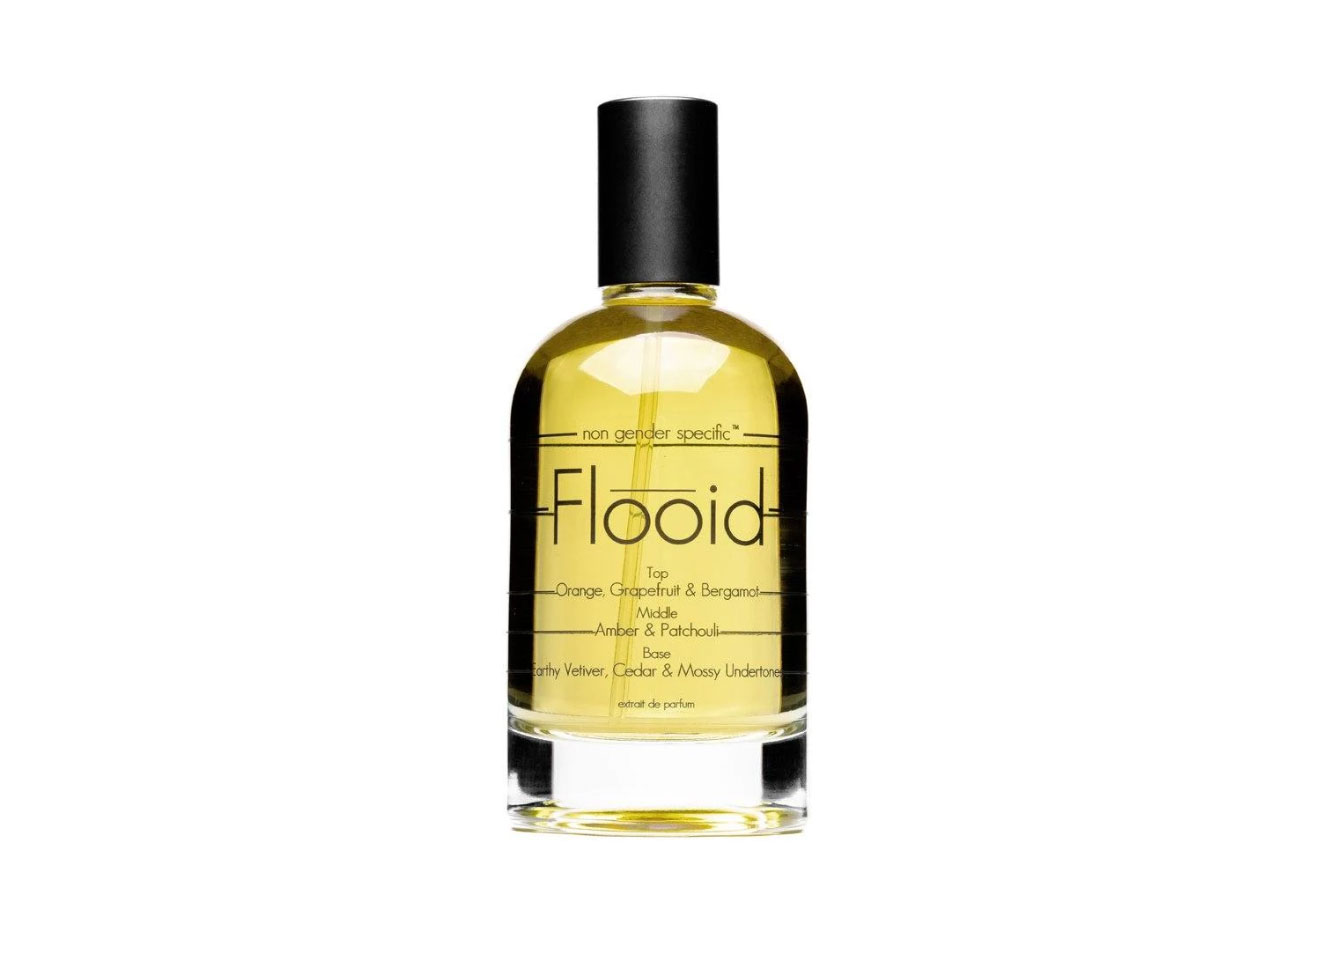 Non Gender Specific Flooid Fragrance